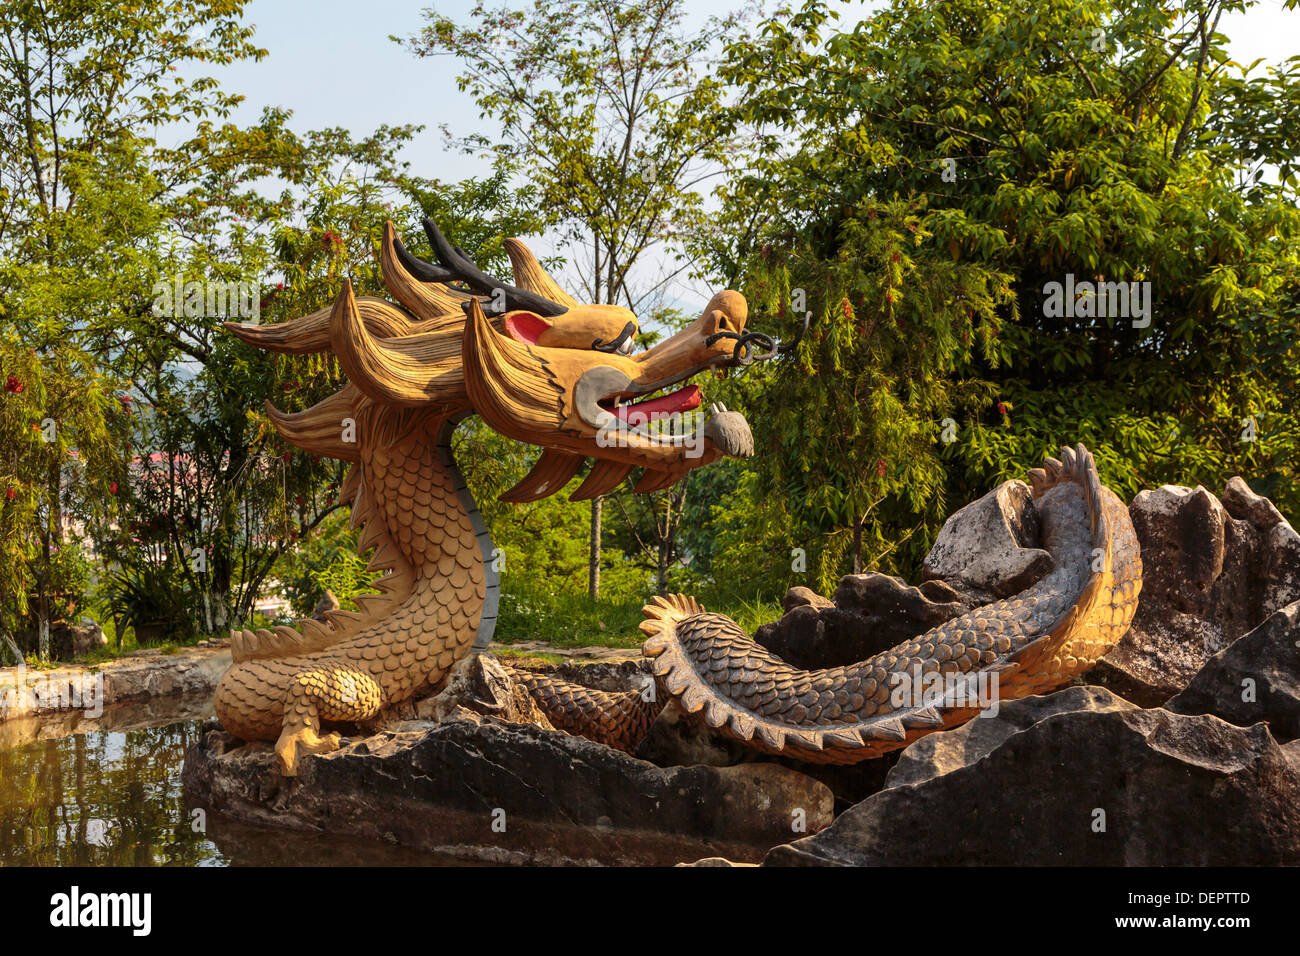 A dragon in the flower gardens on Ham Rong Mountain, Sapa, Vietnam ...